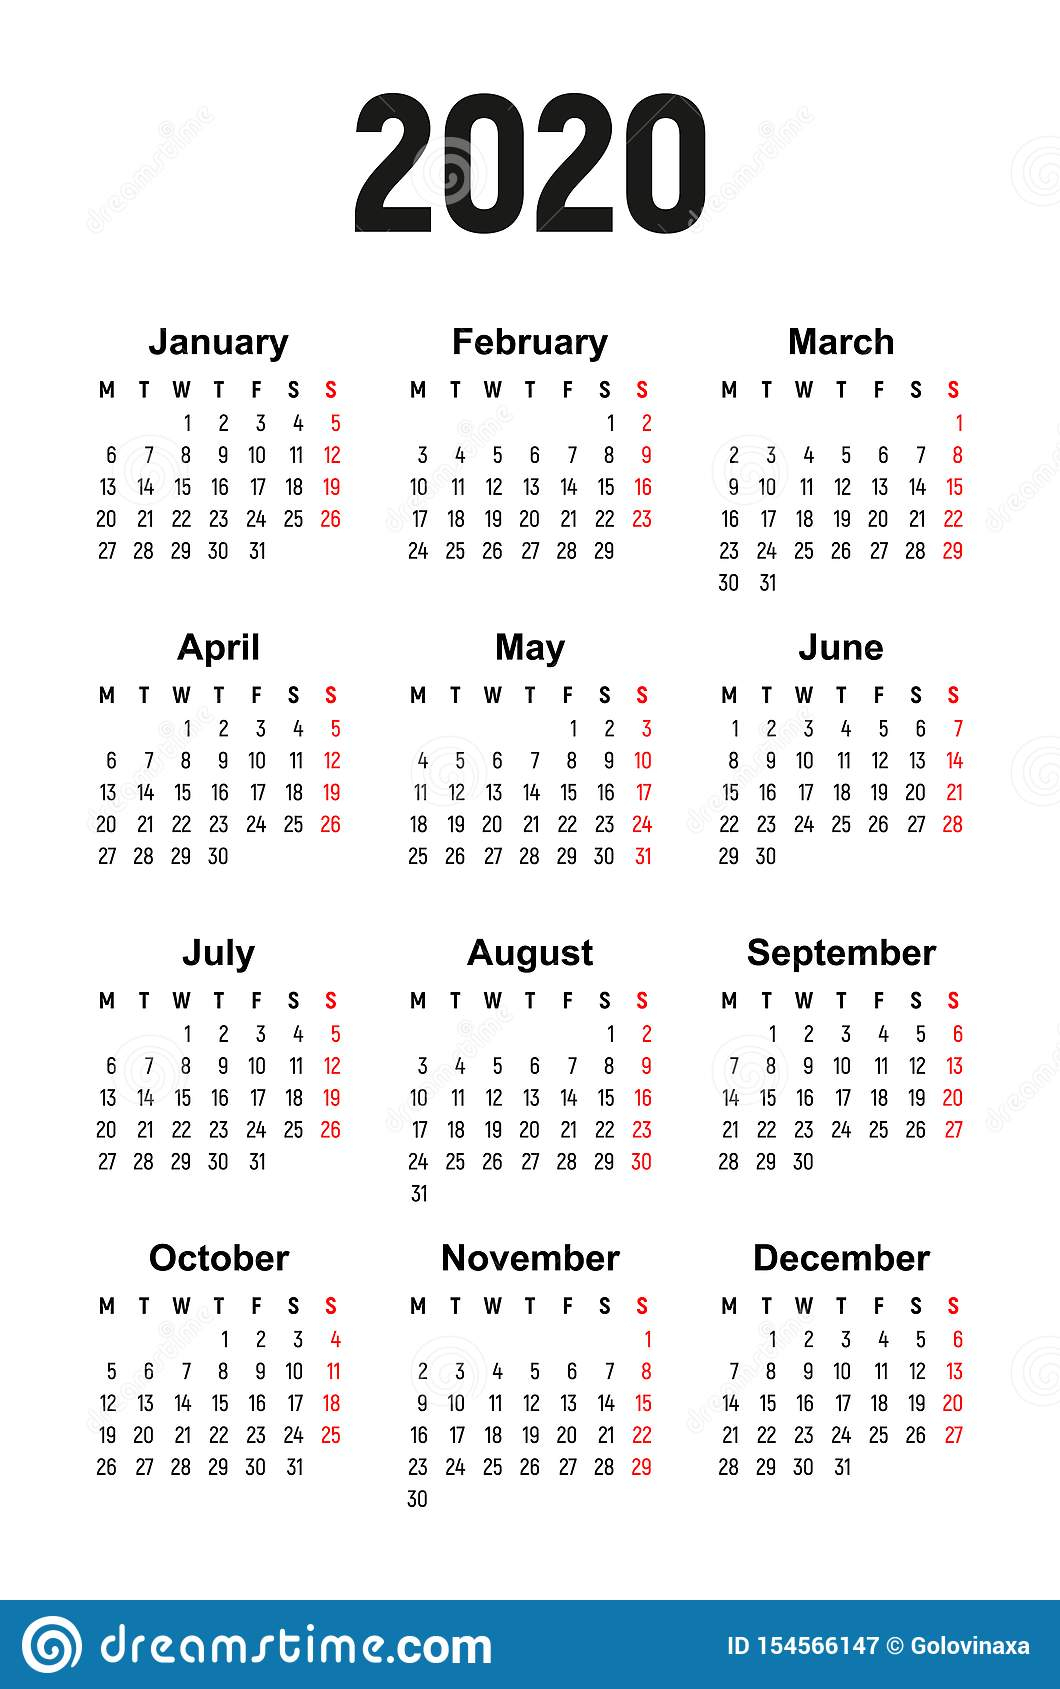 Monday Start Calendar 2020 - Wpa.wpart.co for 2020 Printable Calendars Beginning With Monday